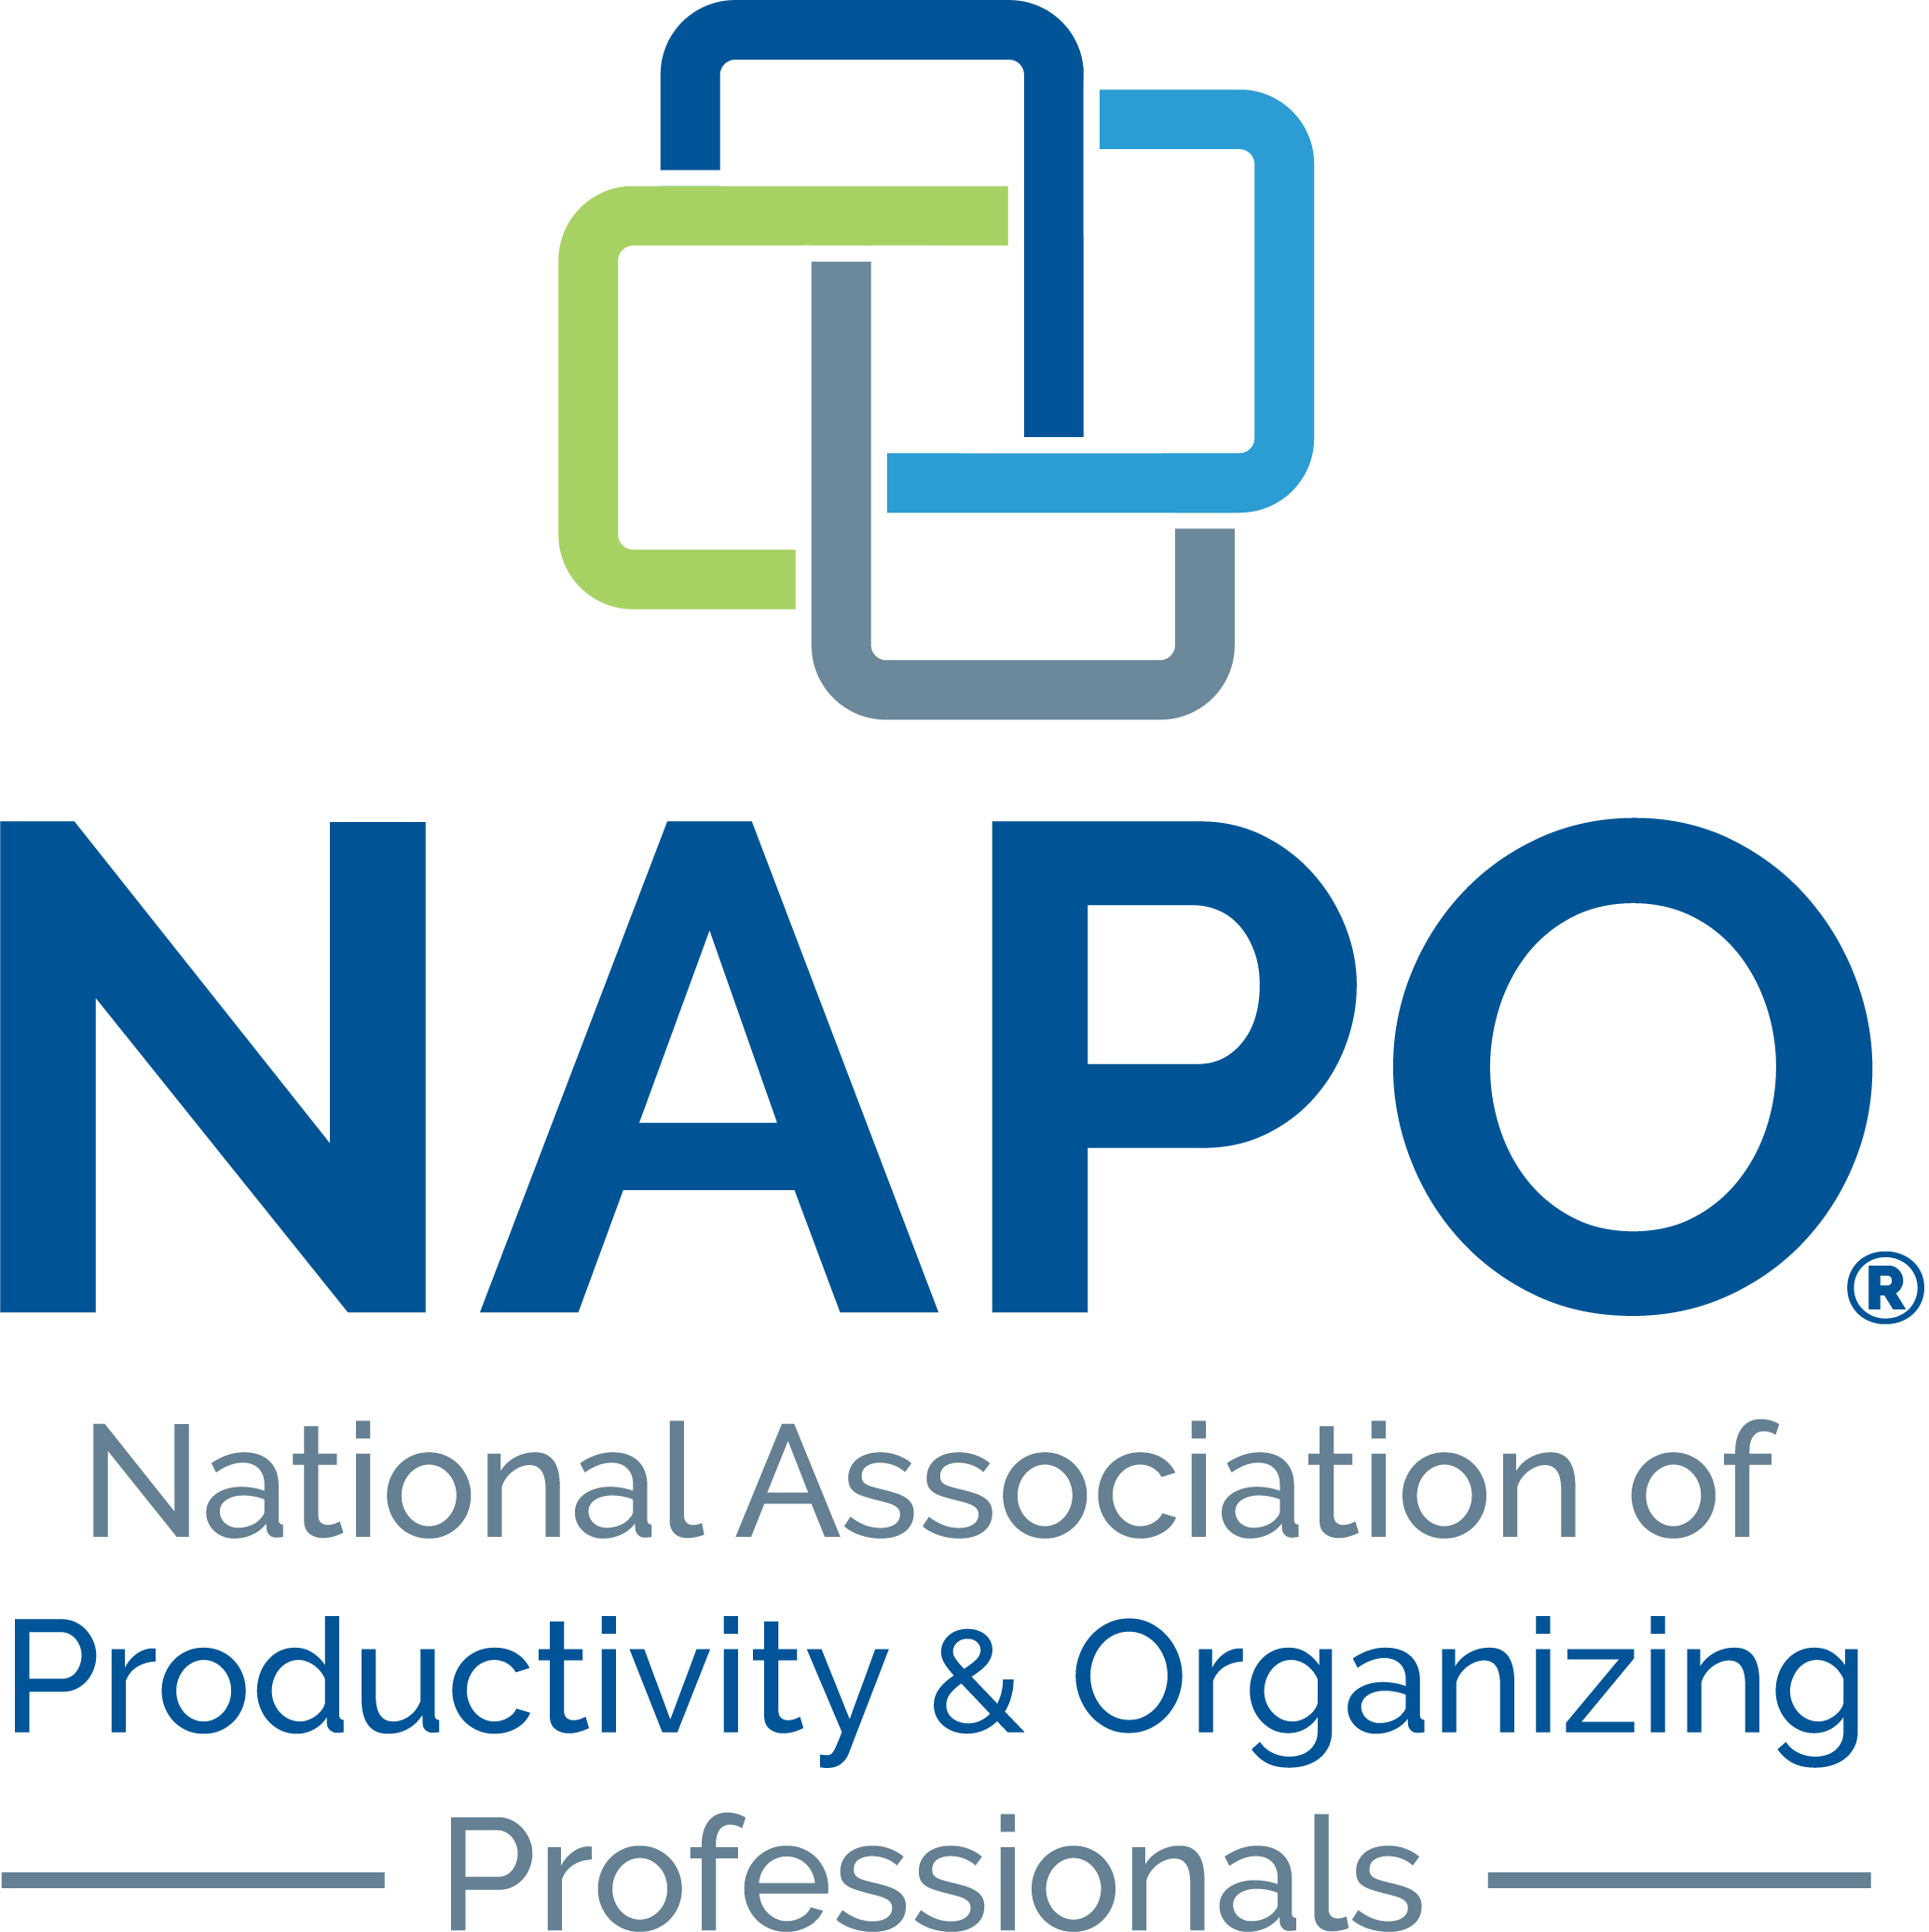 National Association of Productivity and Organizing Professionals Career Center